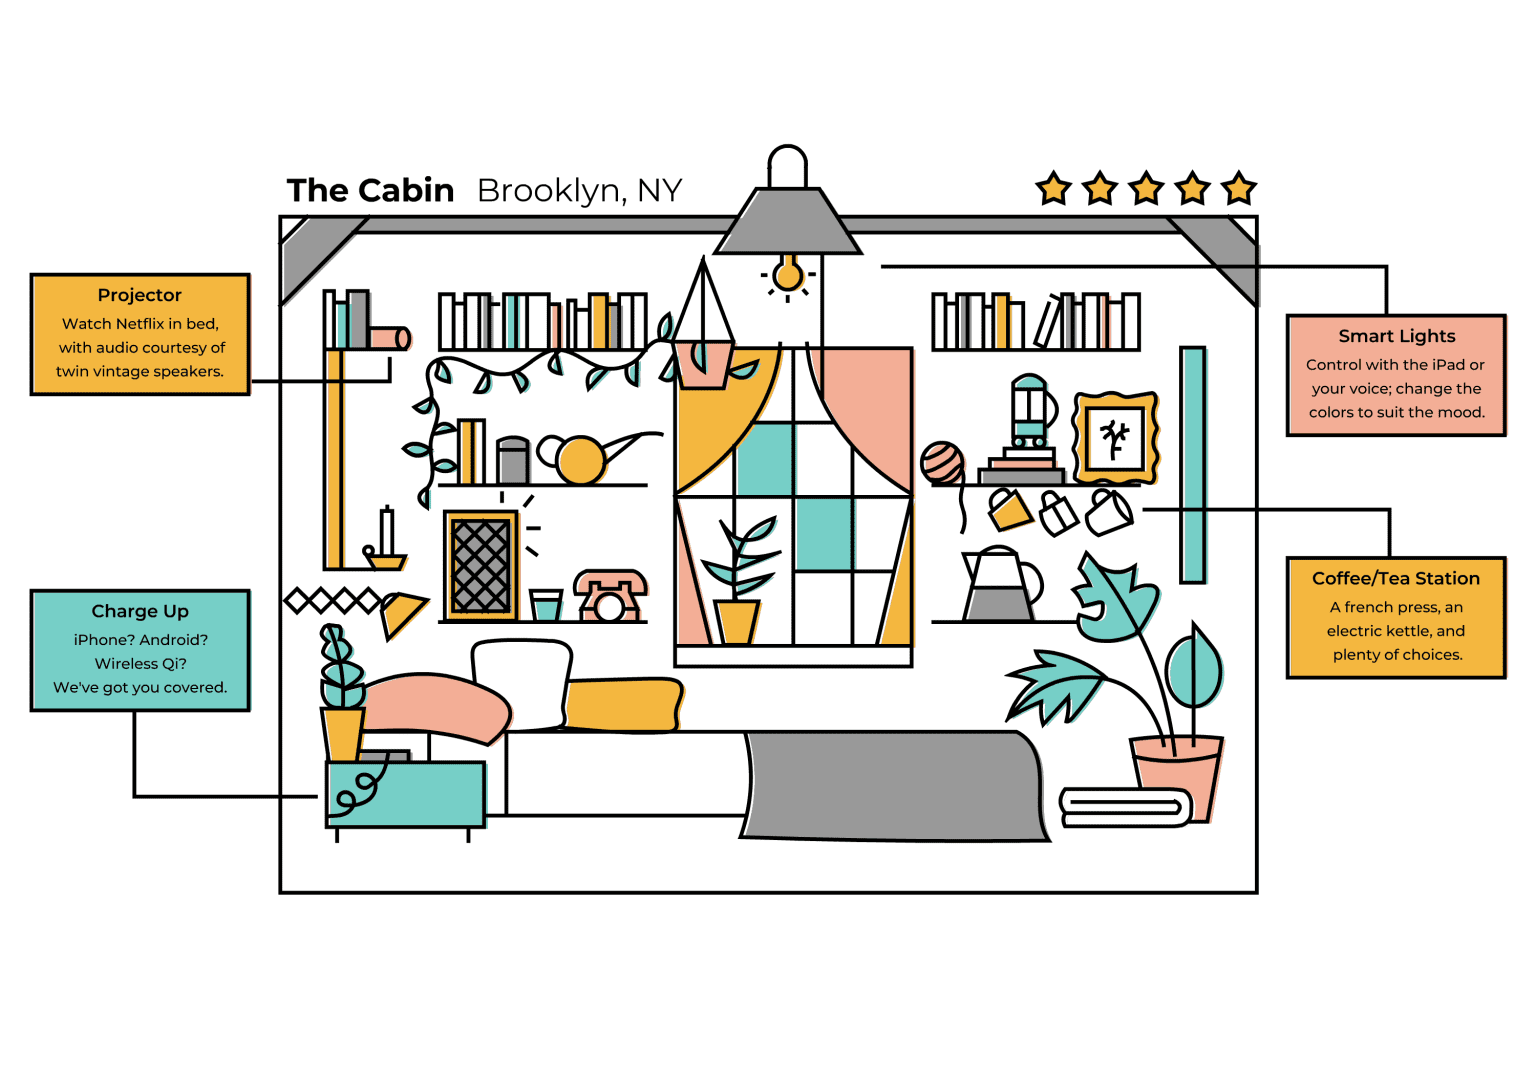 The Cabin - Airbnb Branding